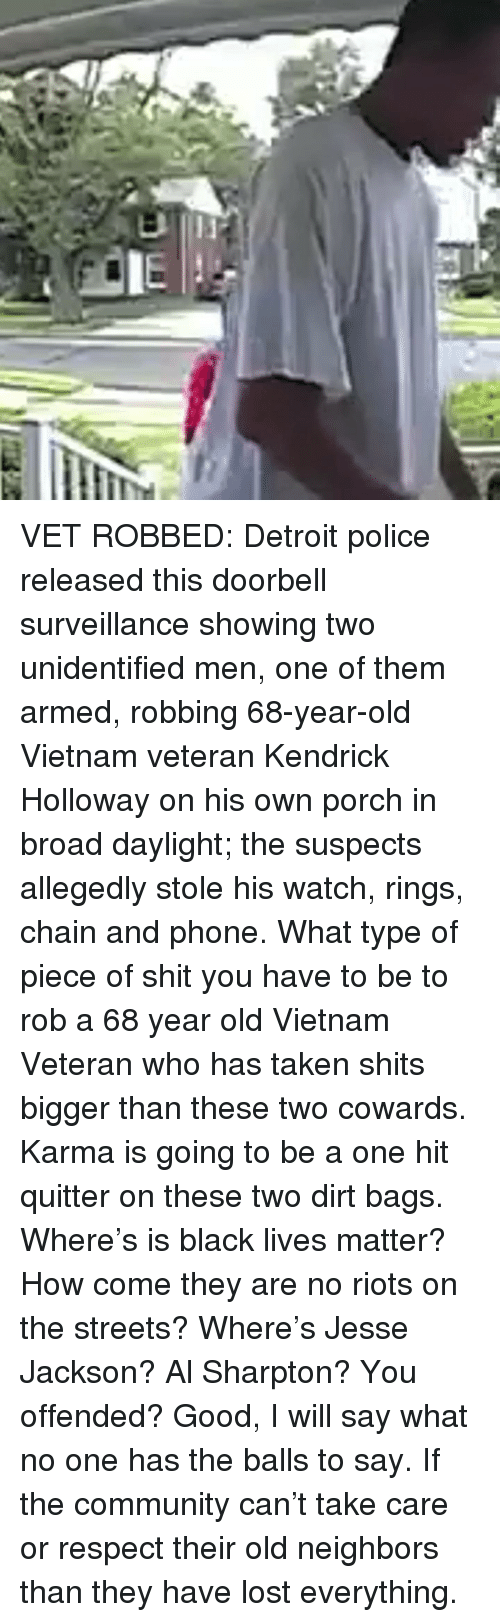 riots: VET ROBBED: Detroit police released this doorbell surveillance showing two unidentified men, one of them armed, robbing 68-year-old Vietnam veteran Kendrick Holloway on his own porch in broad daylight; the suspects allegedly stole his watch, rings, chain and phone. What type of piece of shit you have to be to rob a 68 year old Vietnam Veteran who has taken shits bigger than these two cowards. Karma is going to be a one hit quitter on these two dirt bags. Where's is black lives matter? How come they are no riots on the streets? Where's Jesse Jackson? Al Sharpton? You offended? Good, I will say what no one has the balls to say. If the community can't take care or respect their old neighbors than they have lost everything.